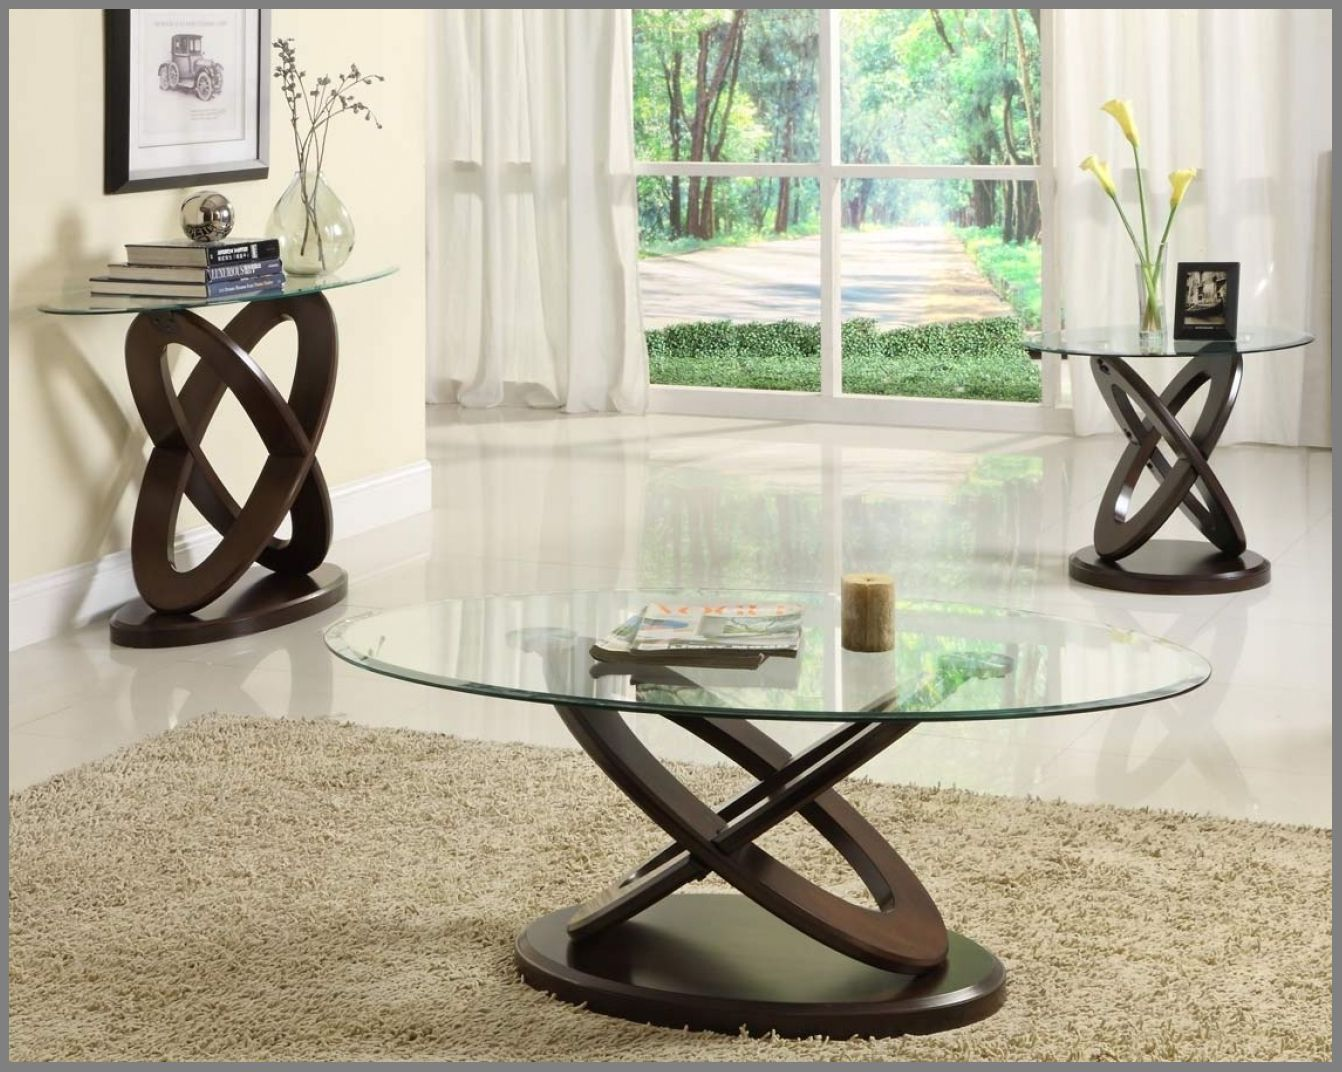 charming small end tables for living room safari decorating ideas glass table plastic rectangular outdoor arranging sitting wooden tool bench kmart miami dolphins gold shoes used